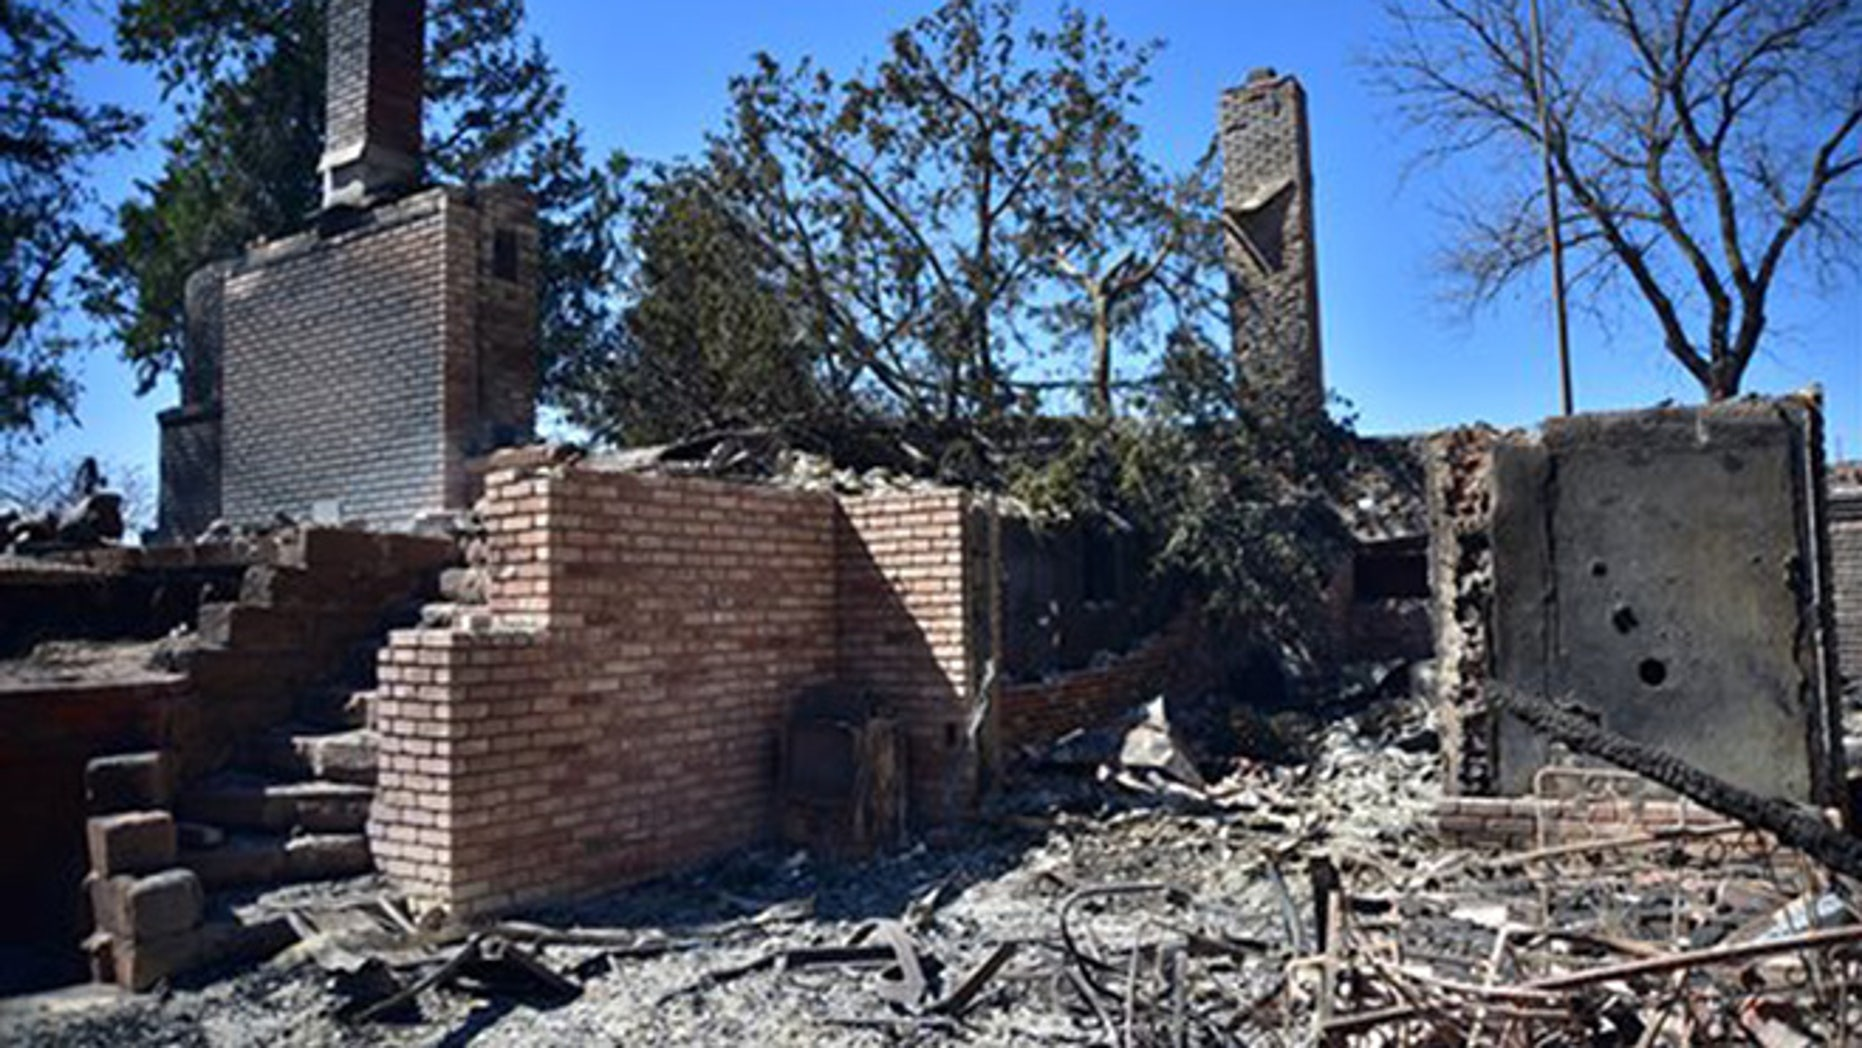 Fire damage to a home Thursday, March 24, 2016 near Medicine Lodge, Kan. A fire that started Tuesday in Oklahoma has now burnt near 400, 000 acres in Kansas and Oklahoma. (Andrew Whitaker/ The Hutchinson News via AP)